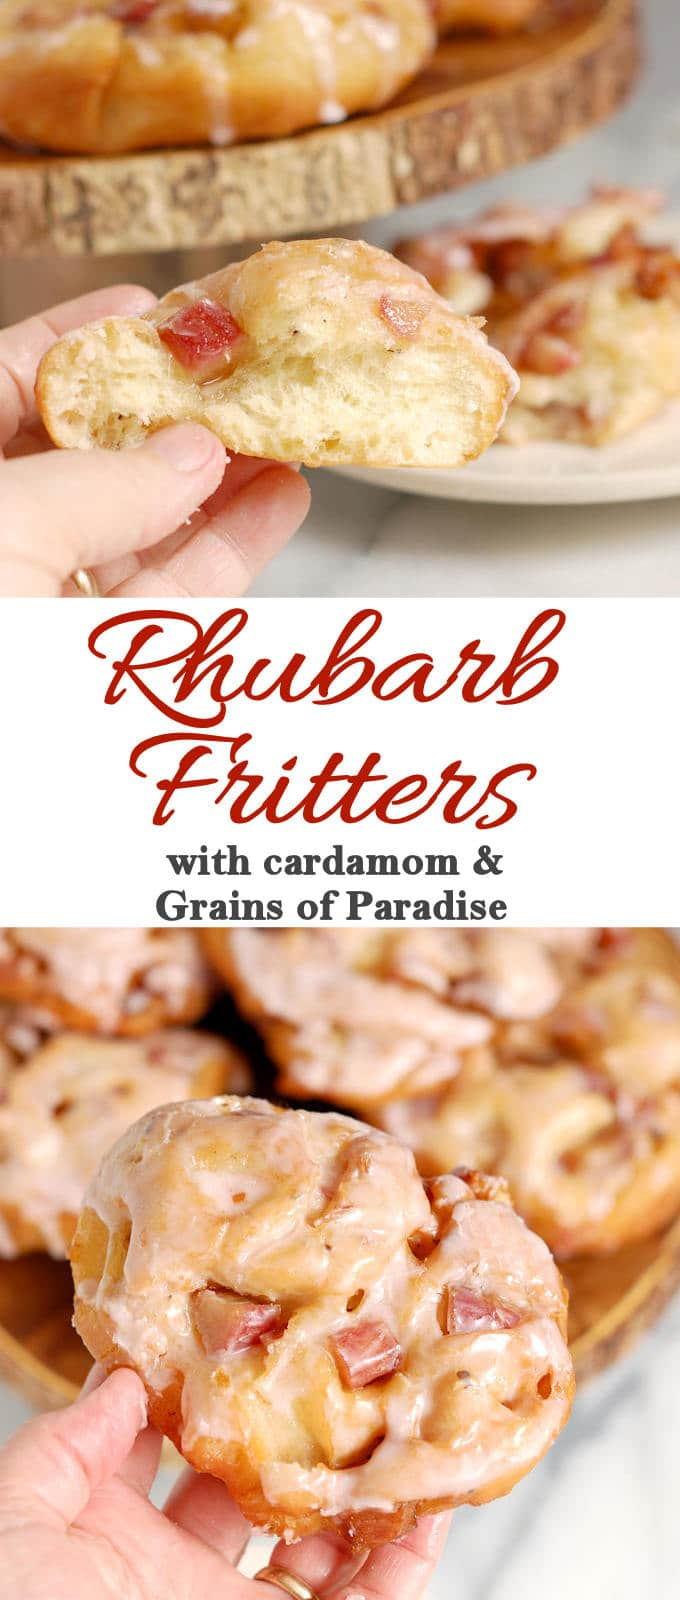 Rhubarb Fritters are yeasty, donut-style treats. Spiced with cardamom & grains of paradise, deep fried and iced with rhubarb juice glaze.